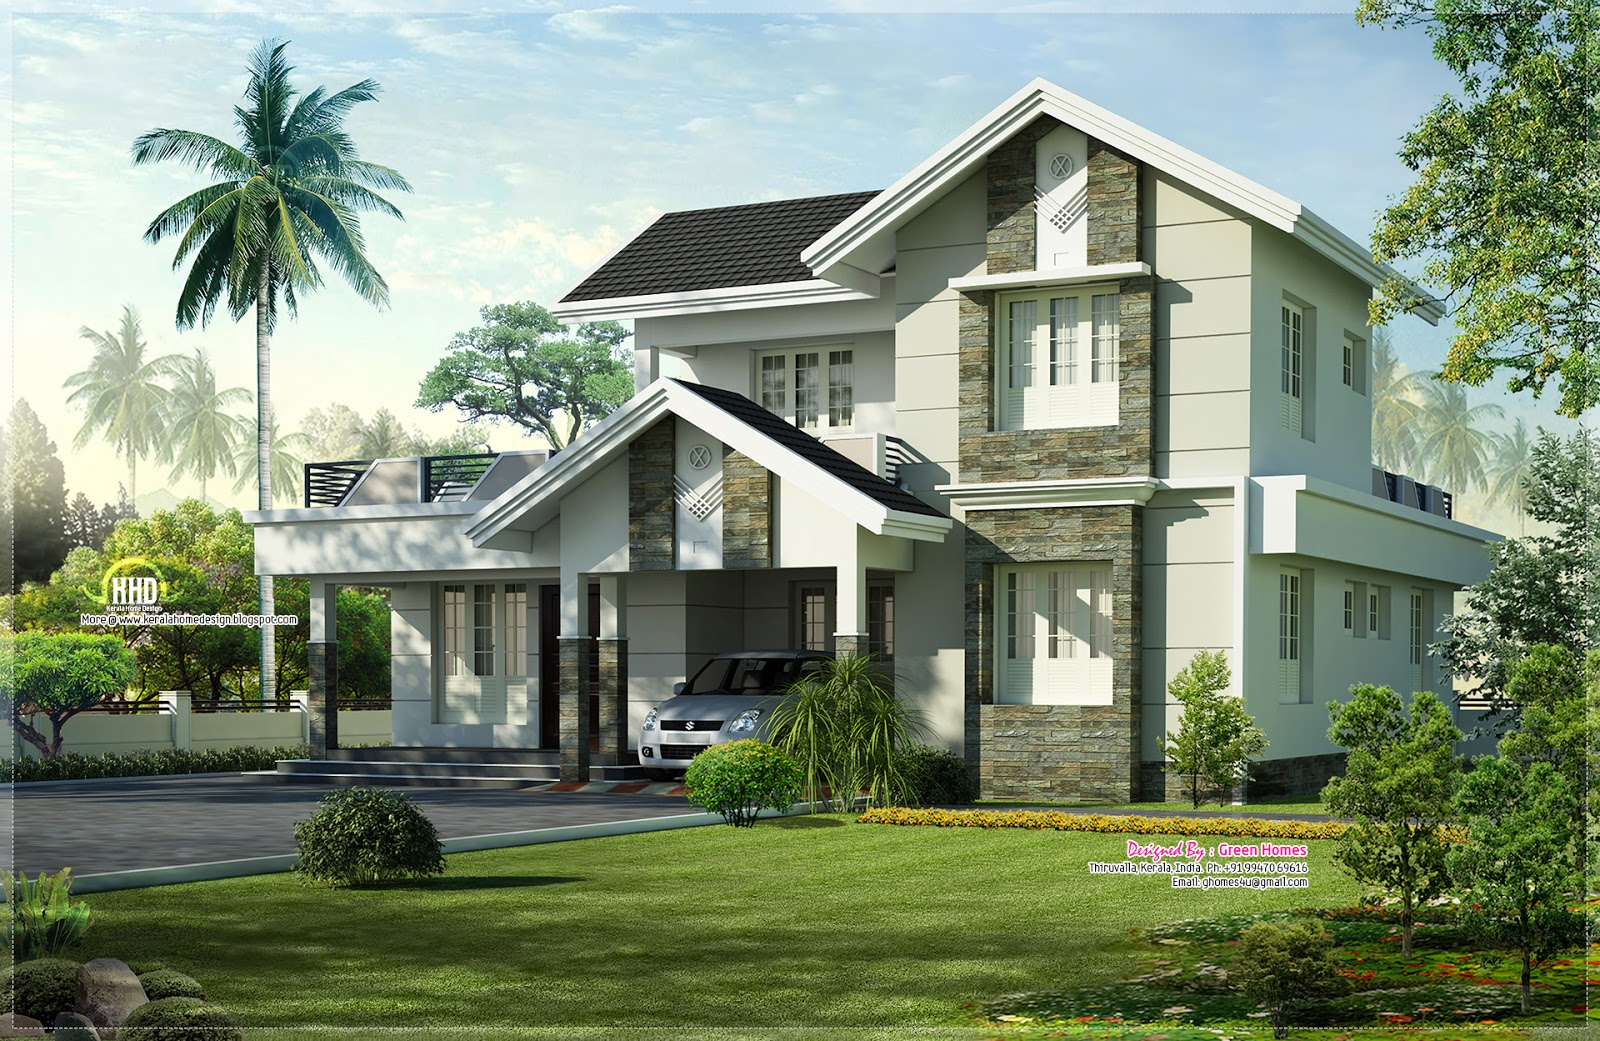 1975 nice home exterior design home kerala plans for Home entrance design